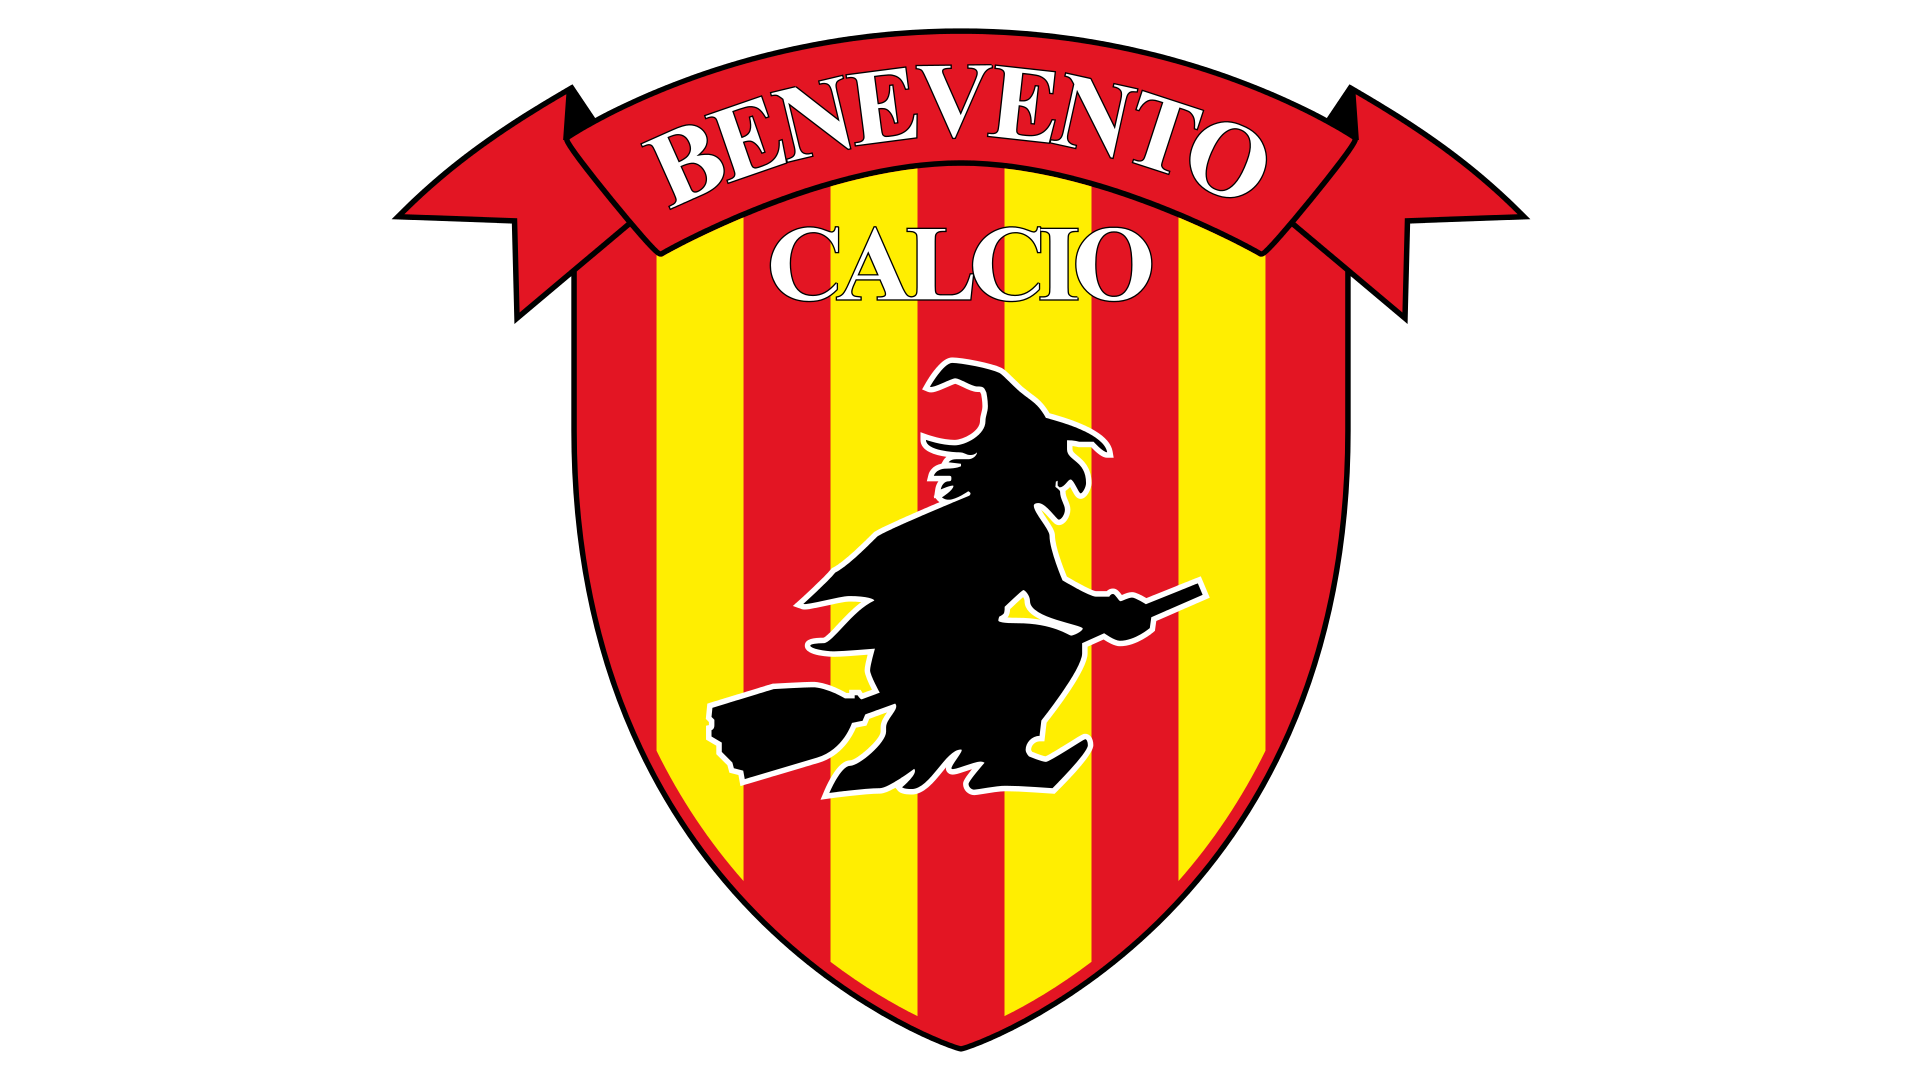 benevento logo and symbol meaning history png benevento logo and symbol meaning